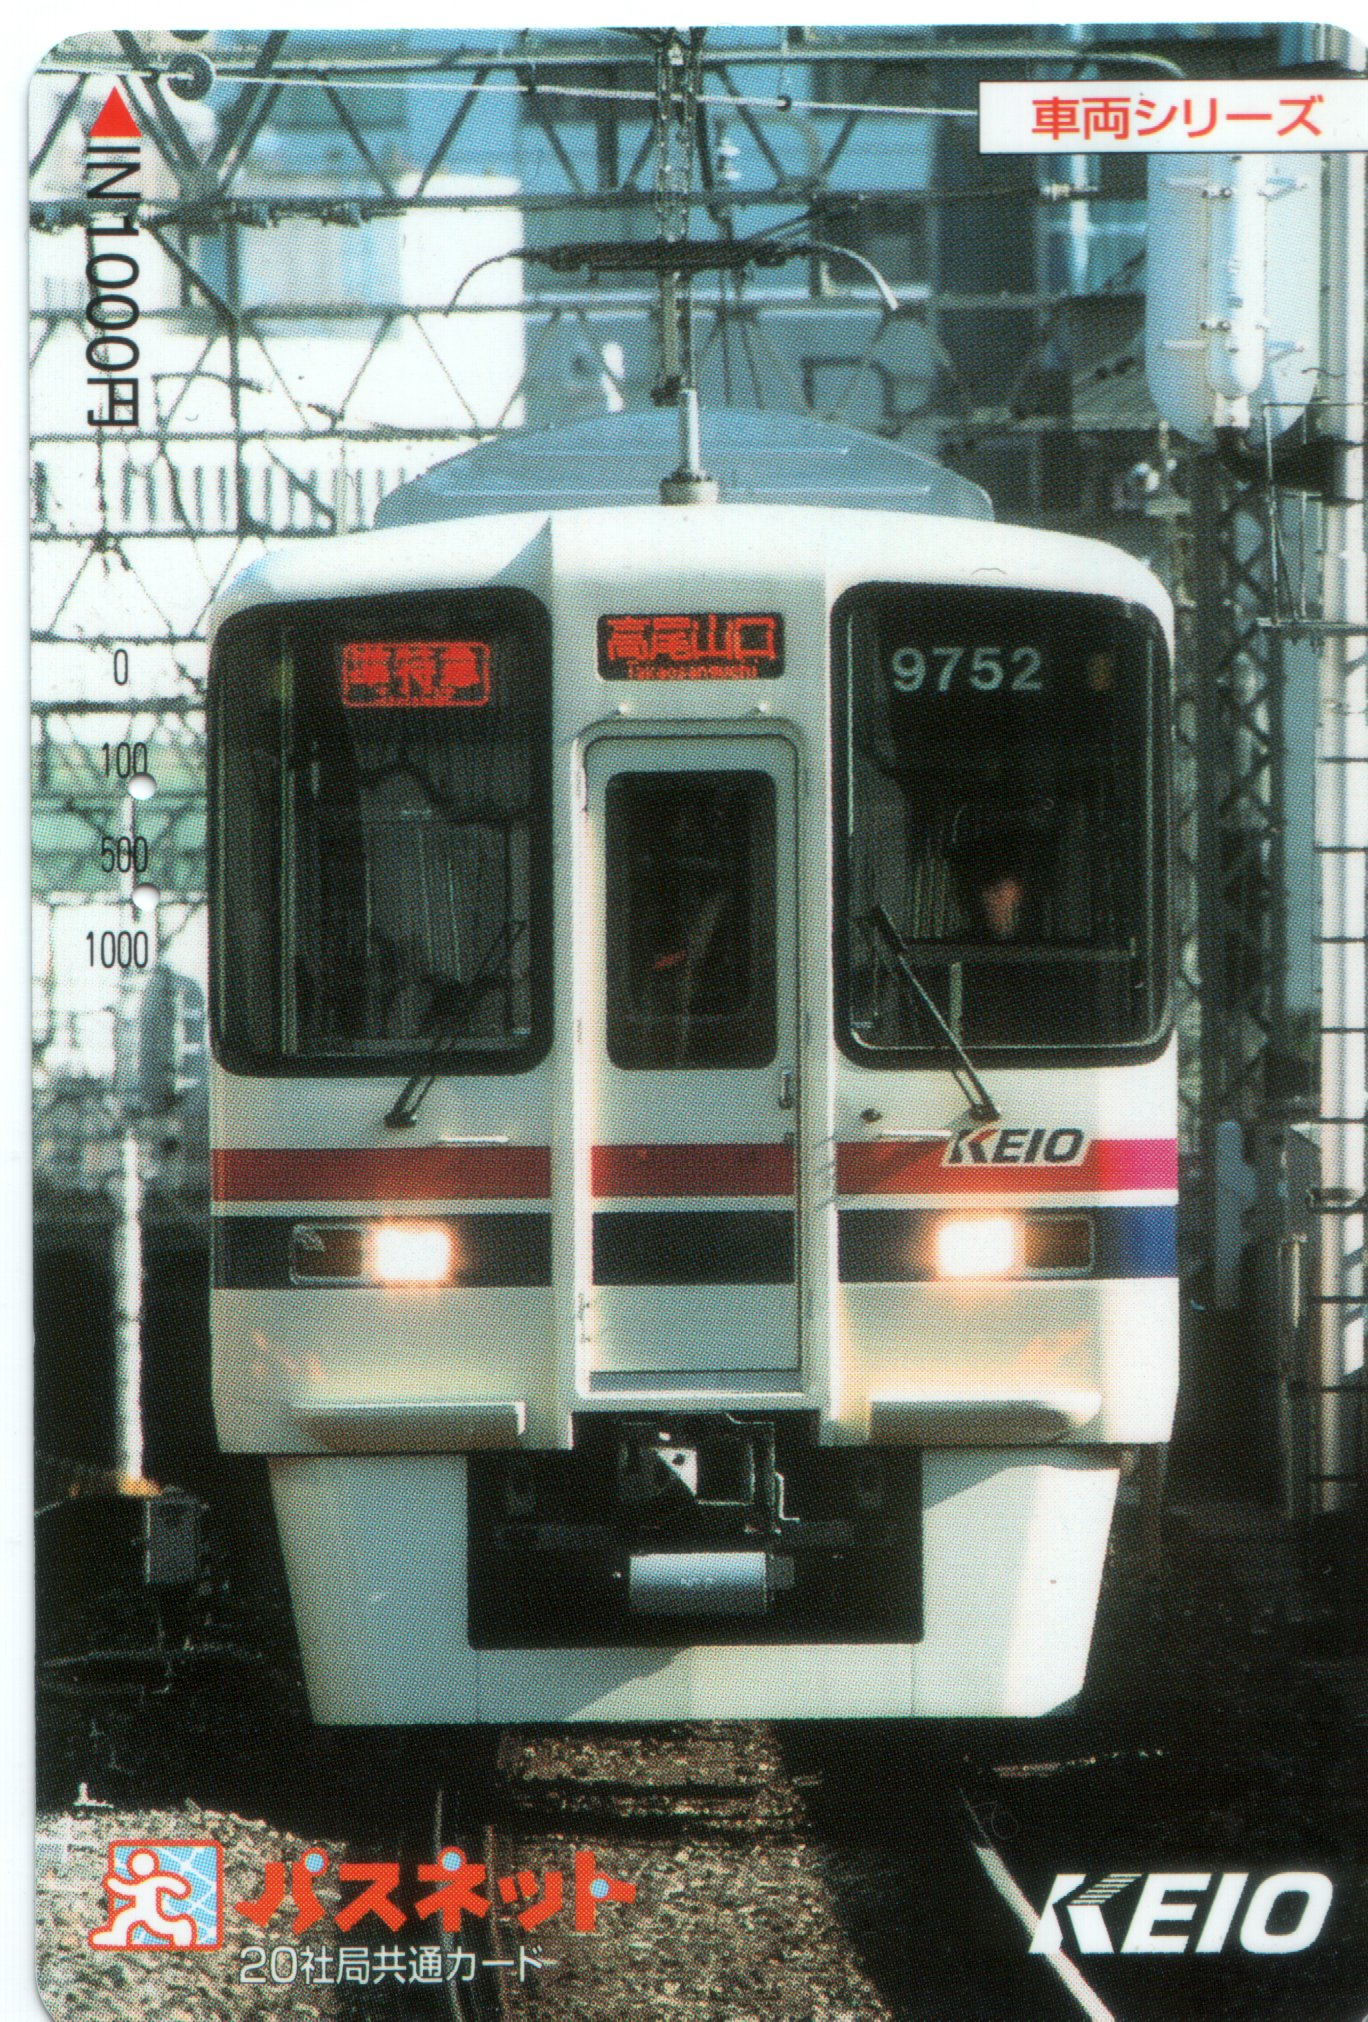 Keio 9000 series car